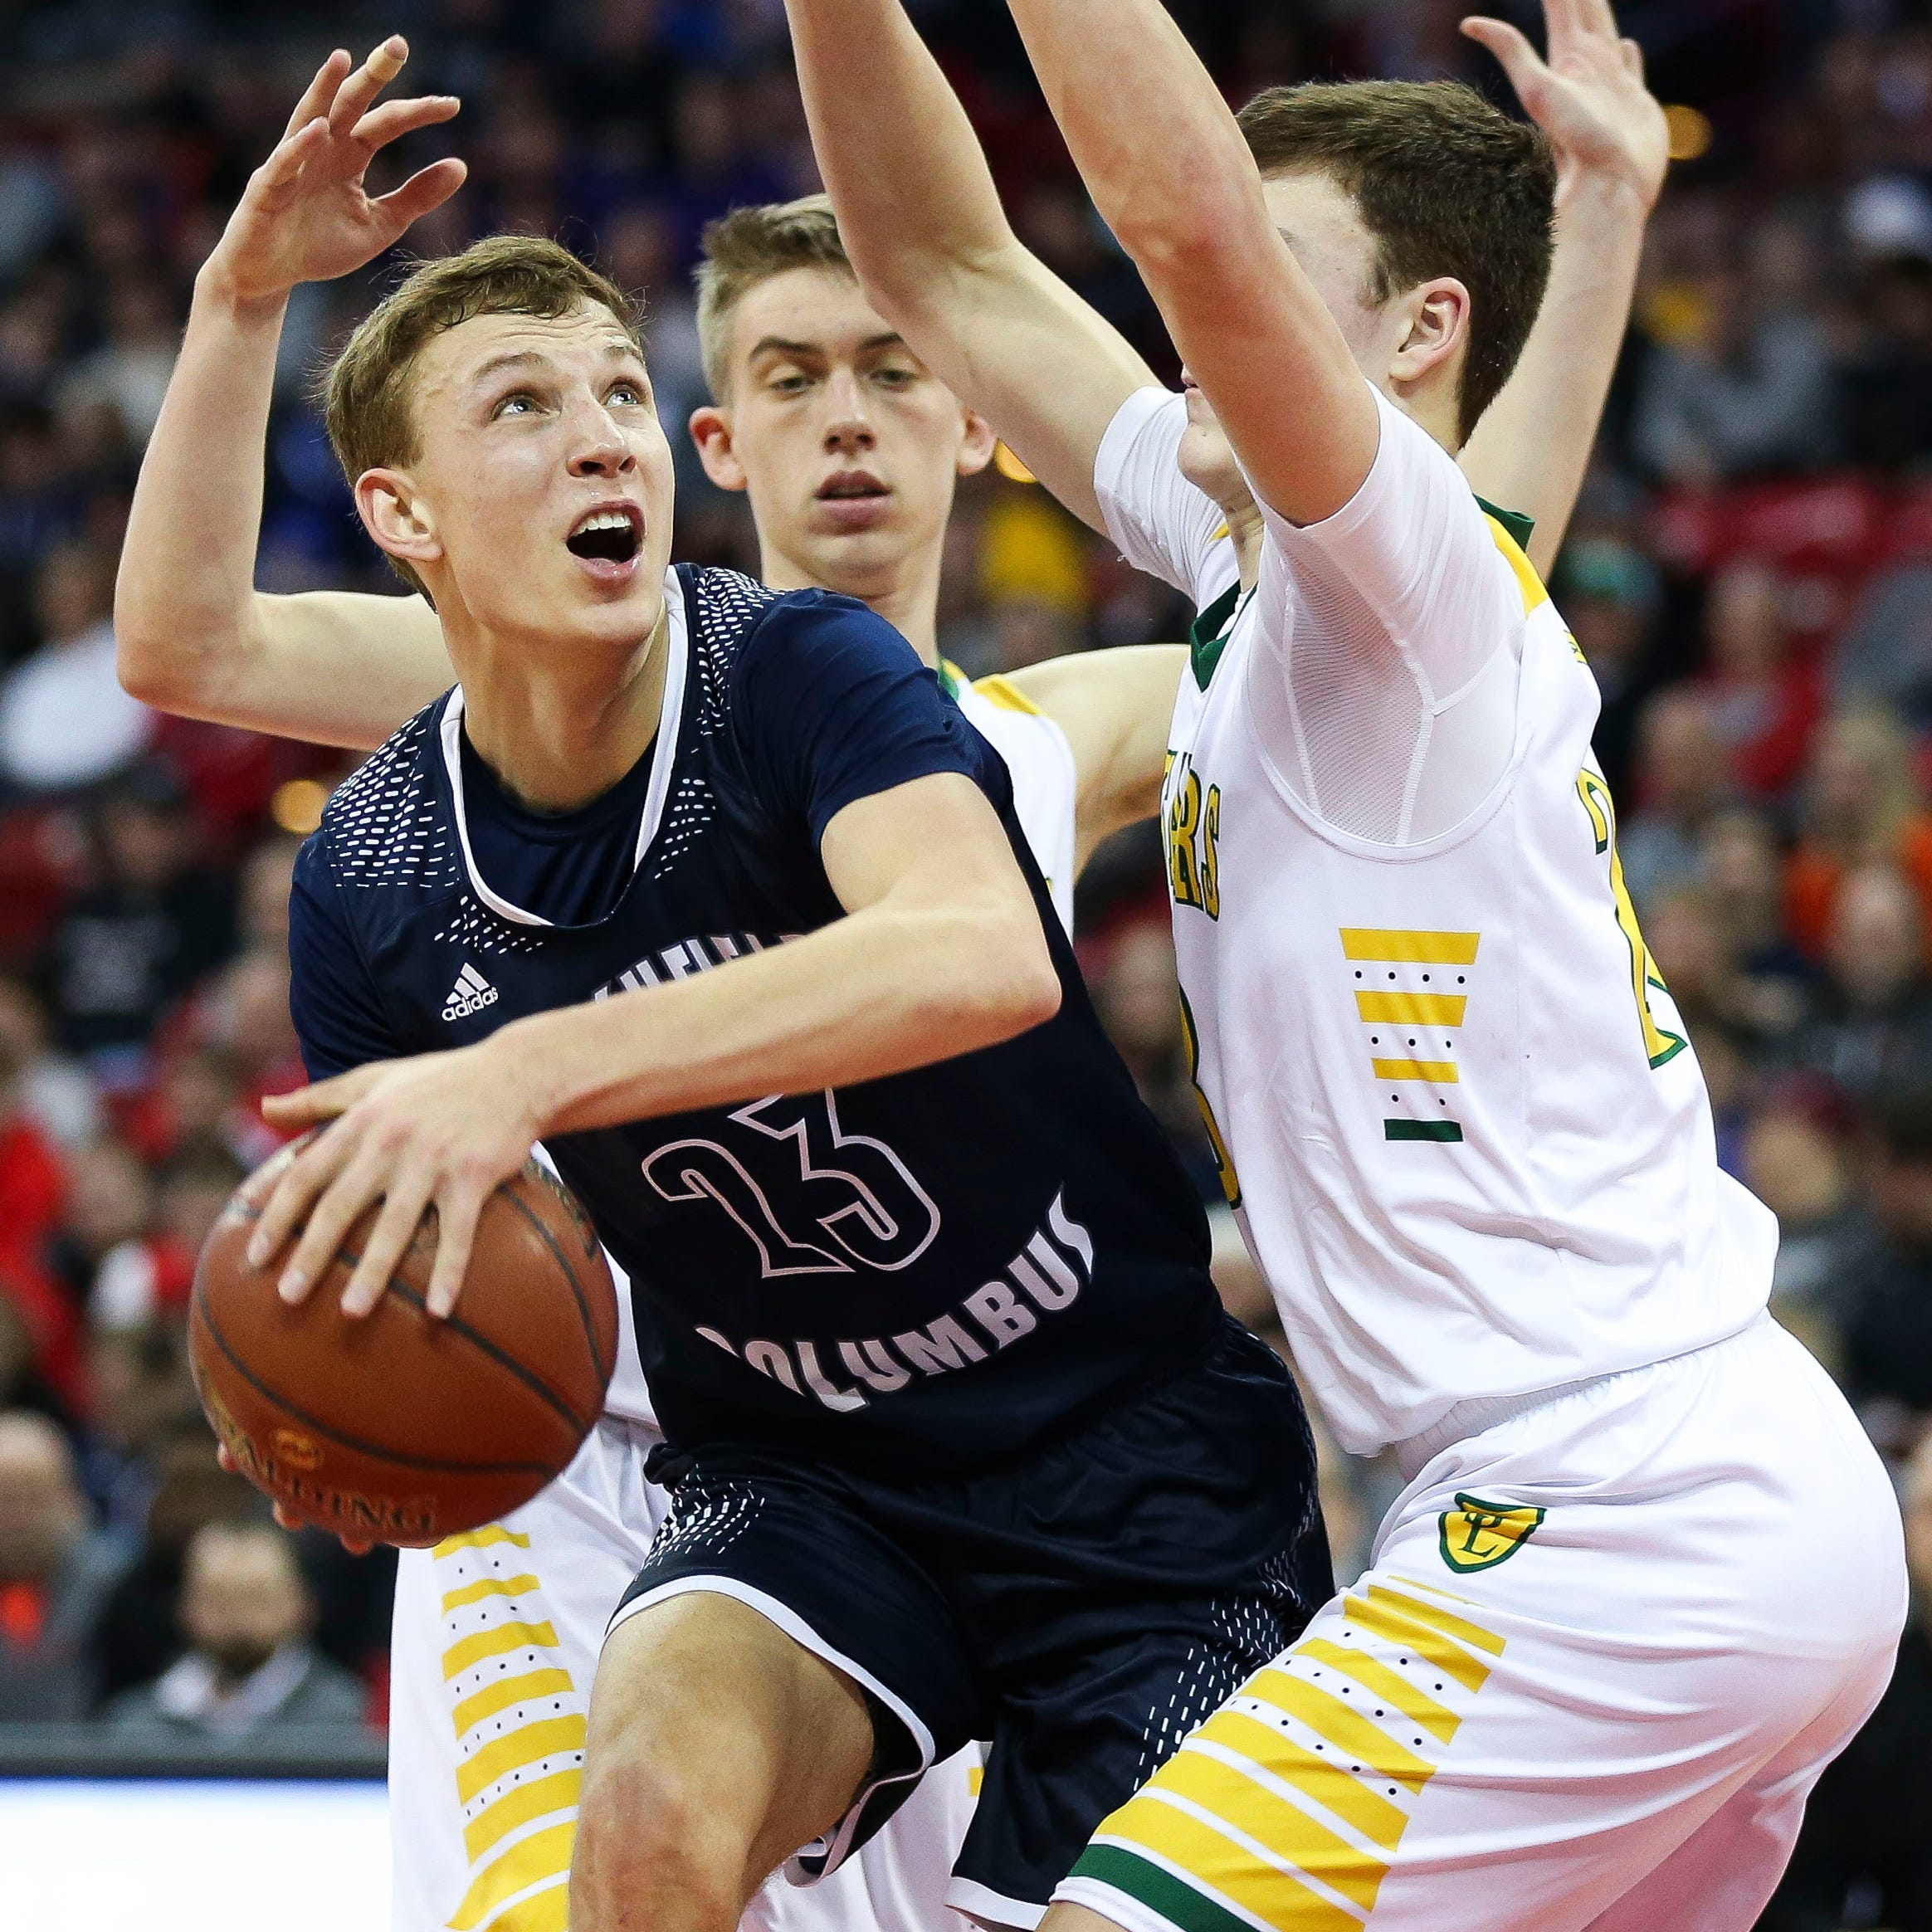 WIAA state basketball: Columbus Catholic falls short in Division 5 title game